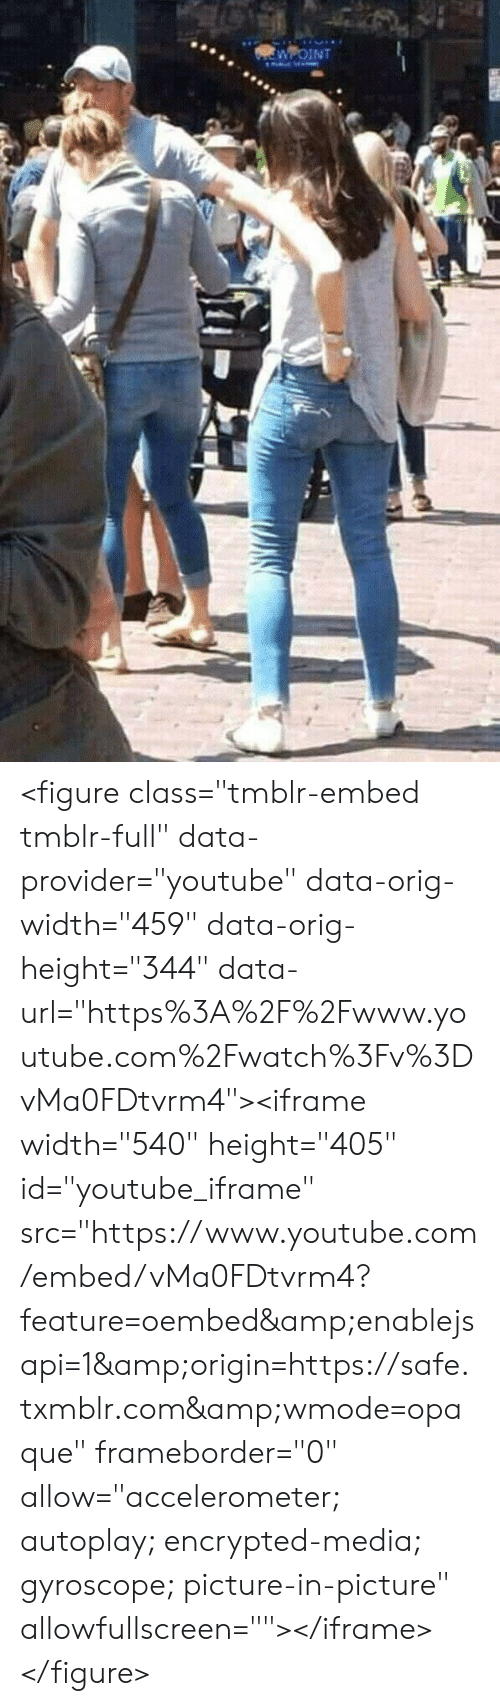 "youtube.com, youtube.com, and Media: WOINT <figure class=""tmblr-embed tmblr-full"" data-provider=""youtube"" data-orig-width=""459"" data-orig-height=""344"" data-url=""https%3A%2F%2Fwww.youtube.com%2Fwatch%3Fv%3DvMa0FDtvrm4""><iframe width=""540"" height=""405"" id=""youtube_iframe"" src=""https://www.youtube.com/embed/vMa0FDtvrm4?feature=oembed&amp;enablejsapi=1&amp;origin=https://safe.txmblr.com&amp;wmode=opaque"" frameborder=""0"" allow=""accelerometer; autoplay; encrypted-media; gyroscope; picture-in-picture"" allowfullscreen=""""></iframe></figure>"